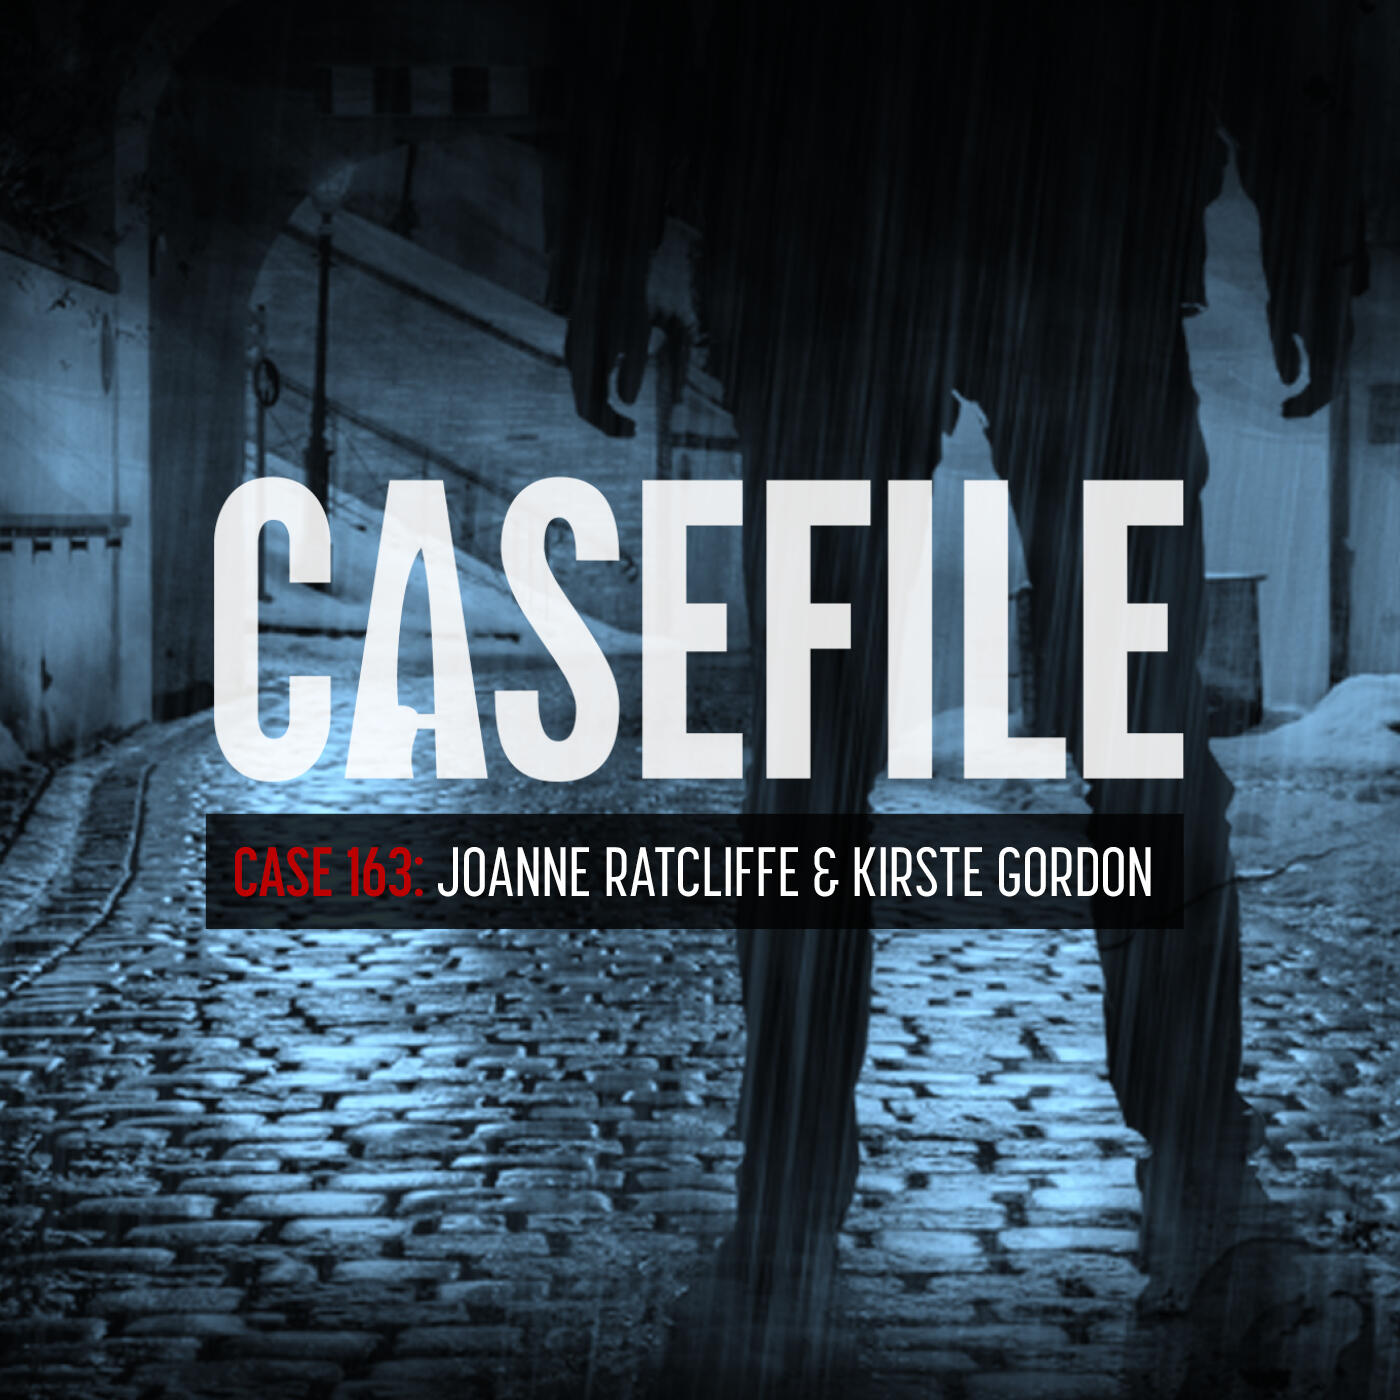 Case 163: Joanne Ratcliffe & Kirste Gordon